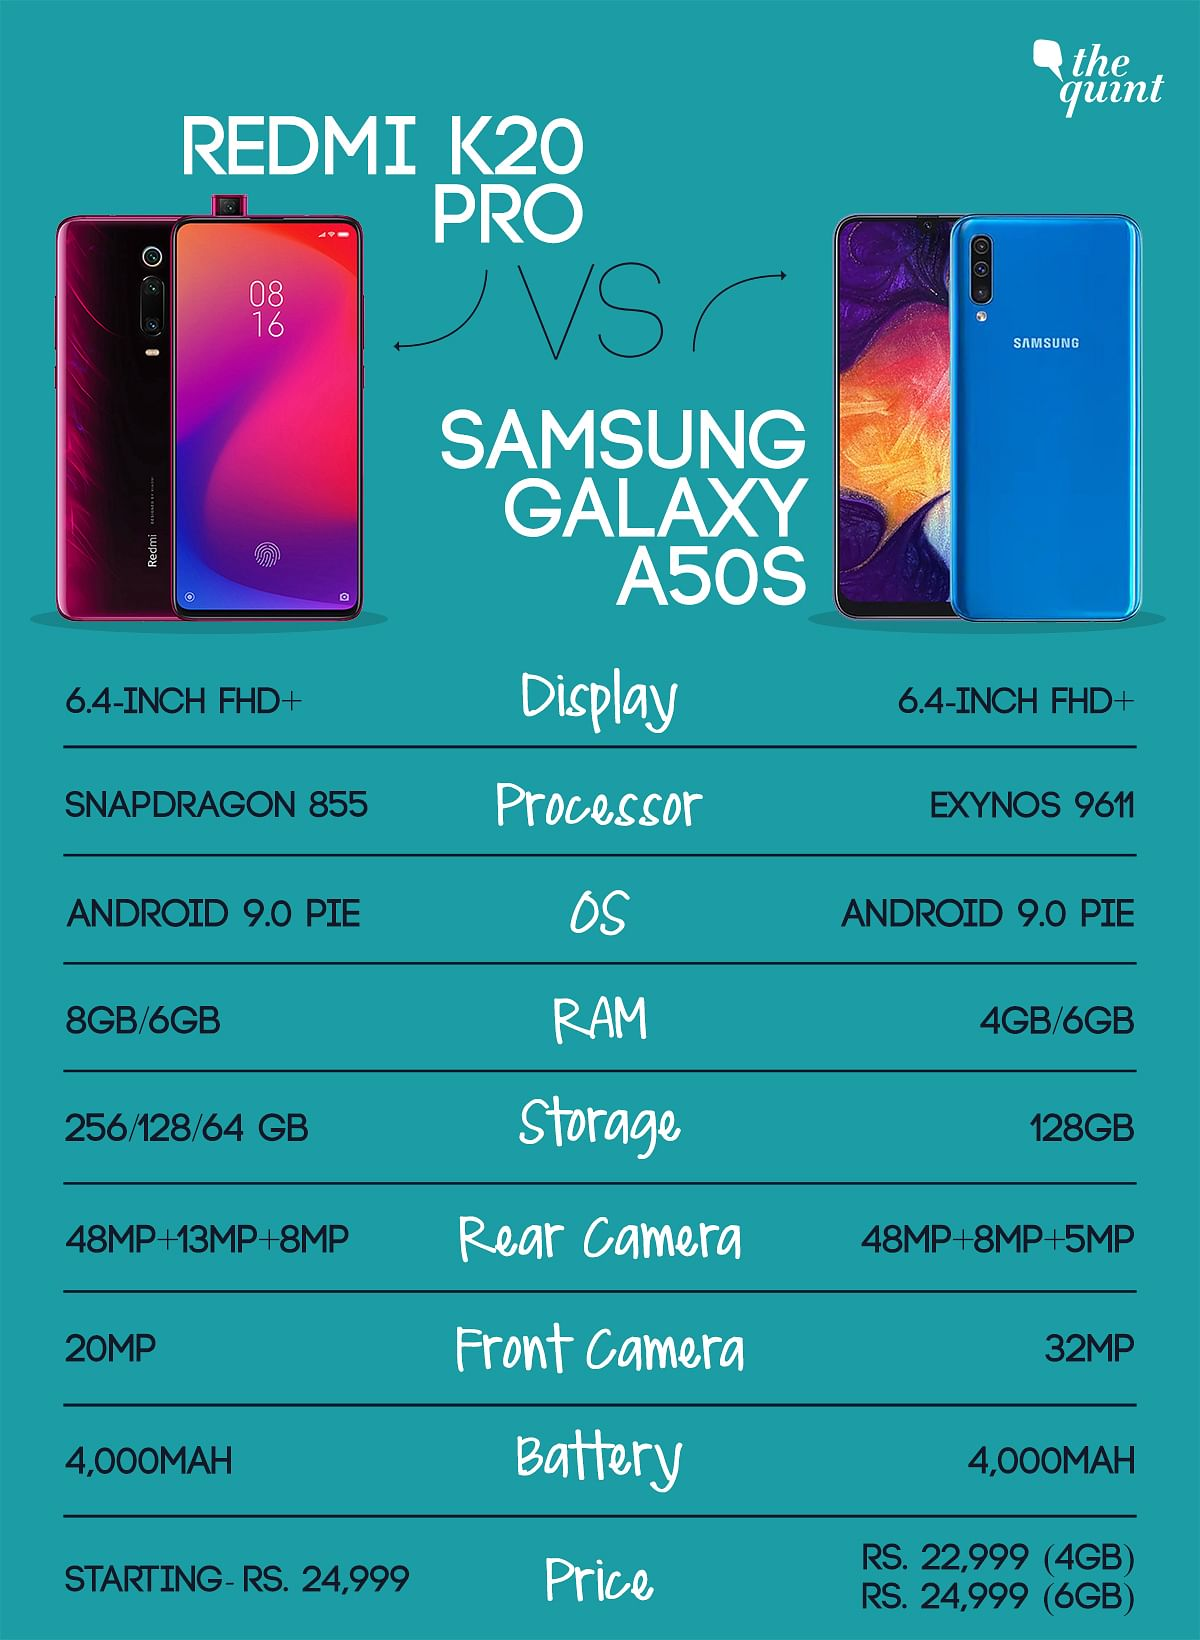 Samsung Galaxy A50s vs Redmi K20 Pro: Which One Should You Buy?